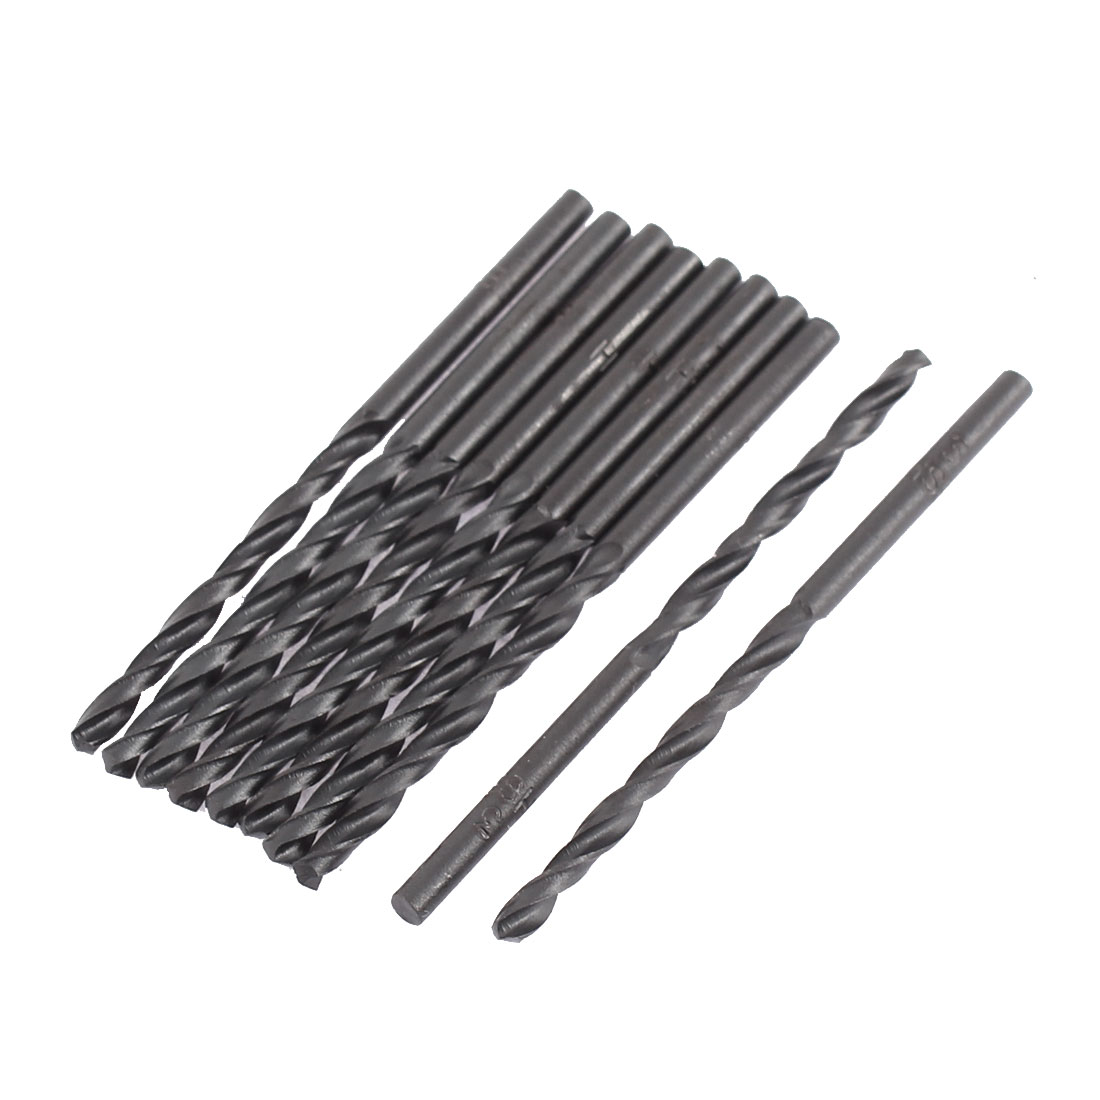 3mm Cutting Dia 60mm Length HSS Straight Shank Twist Drill Bit Black 10pcs